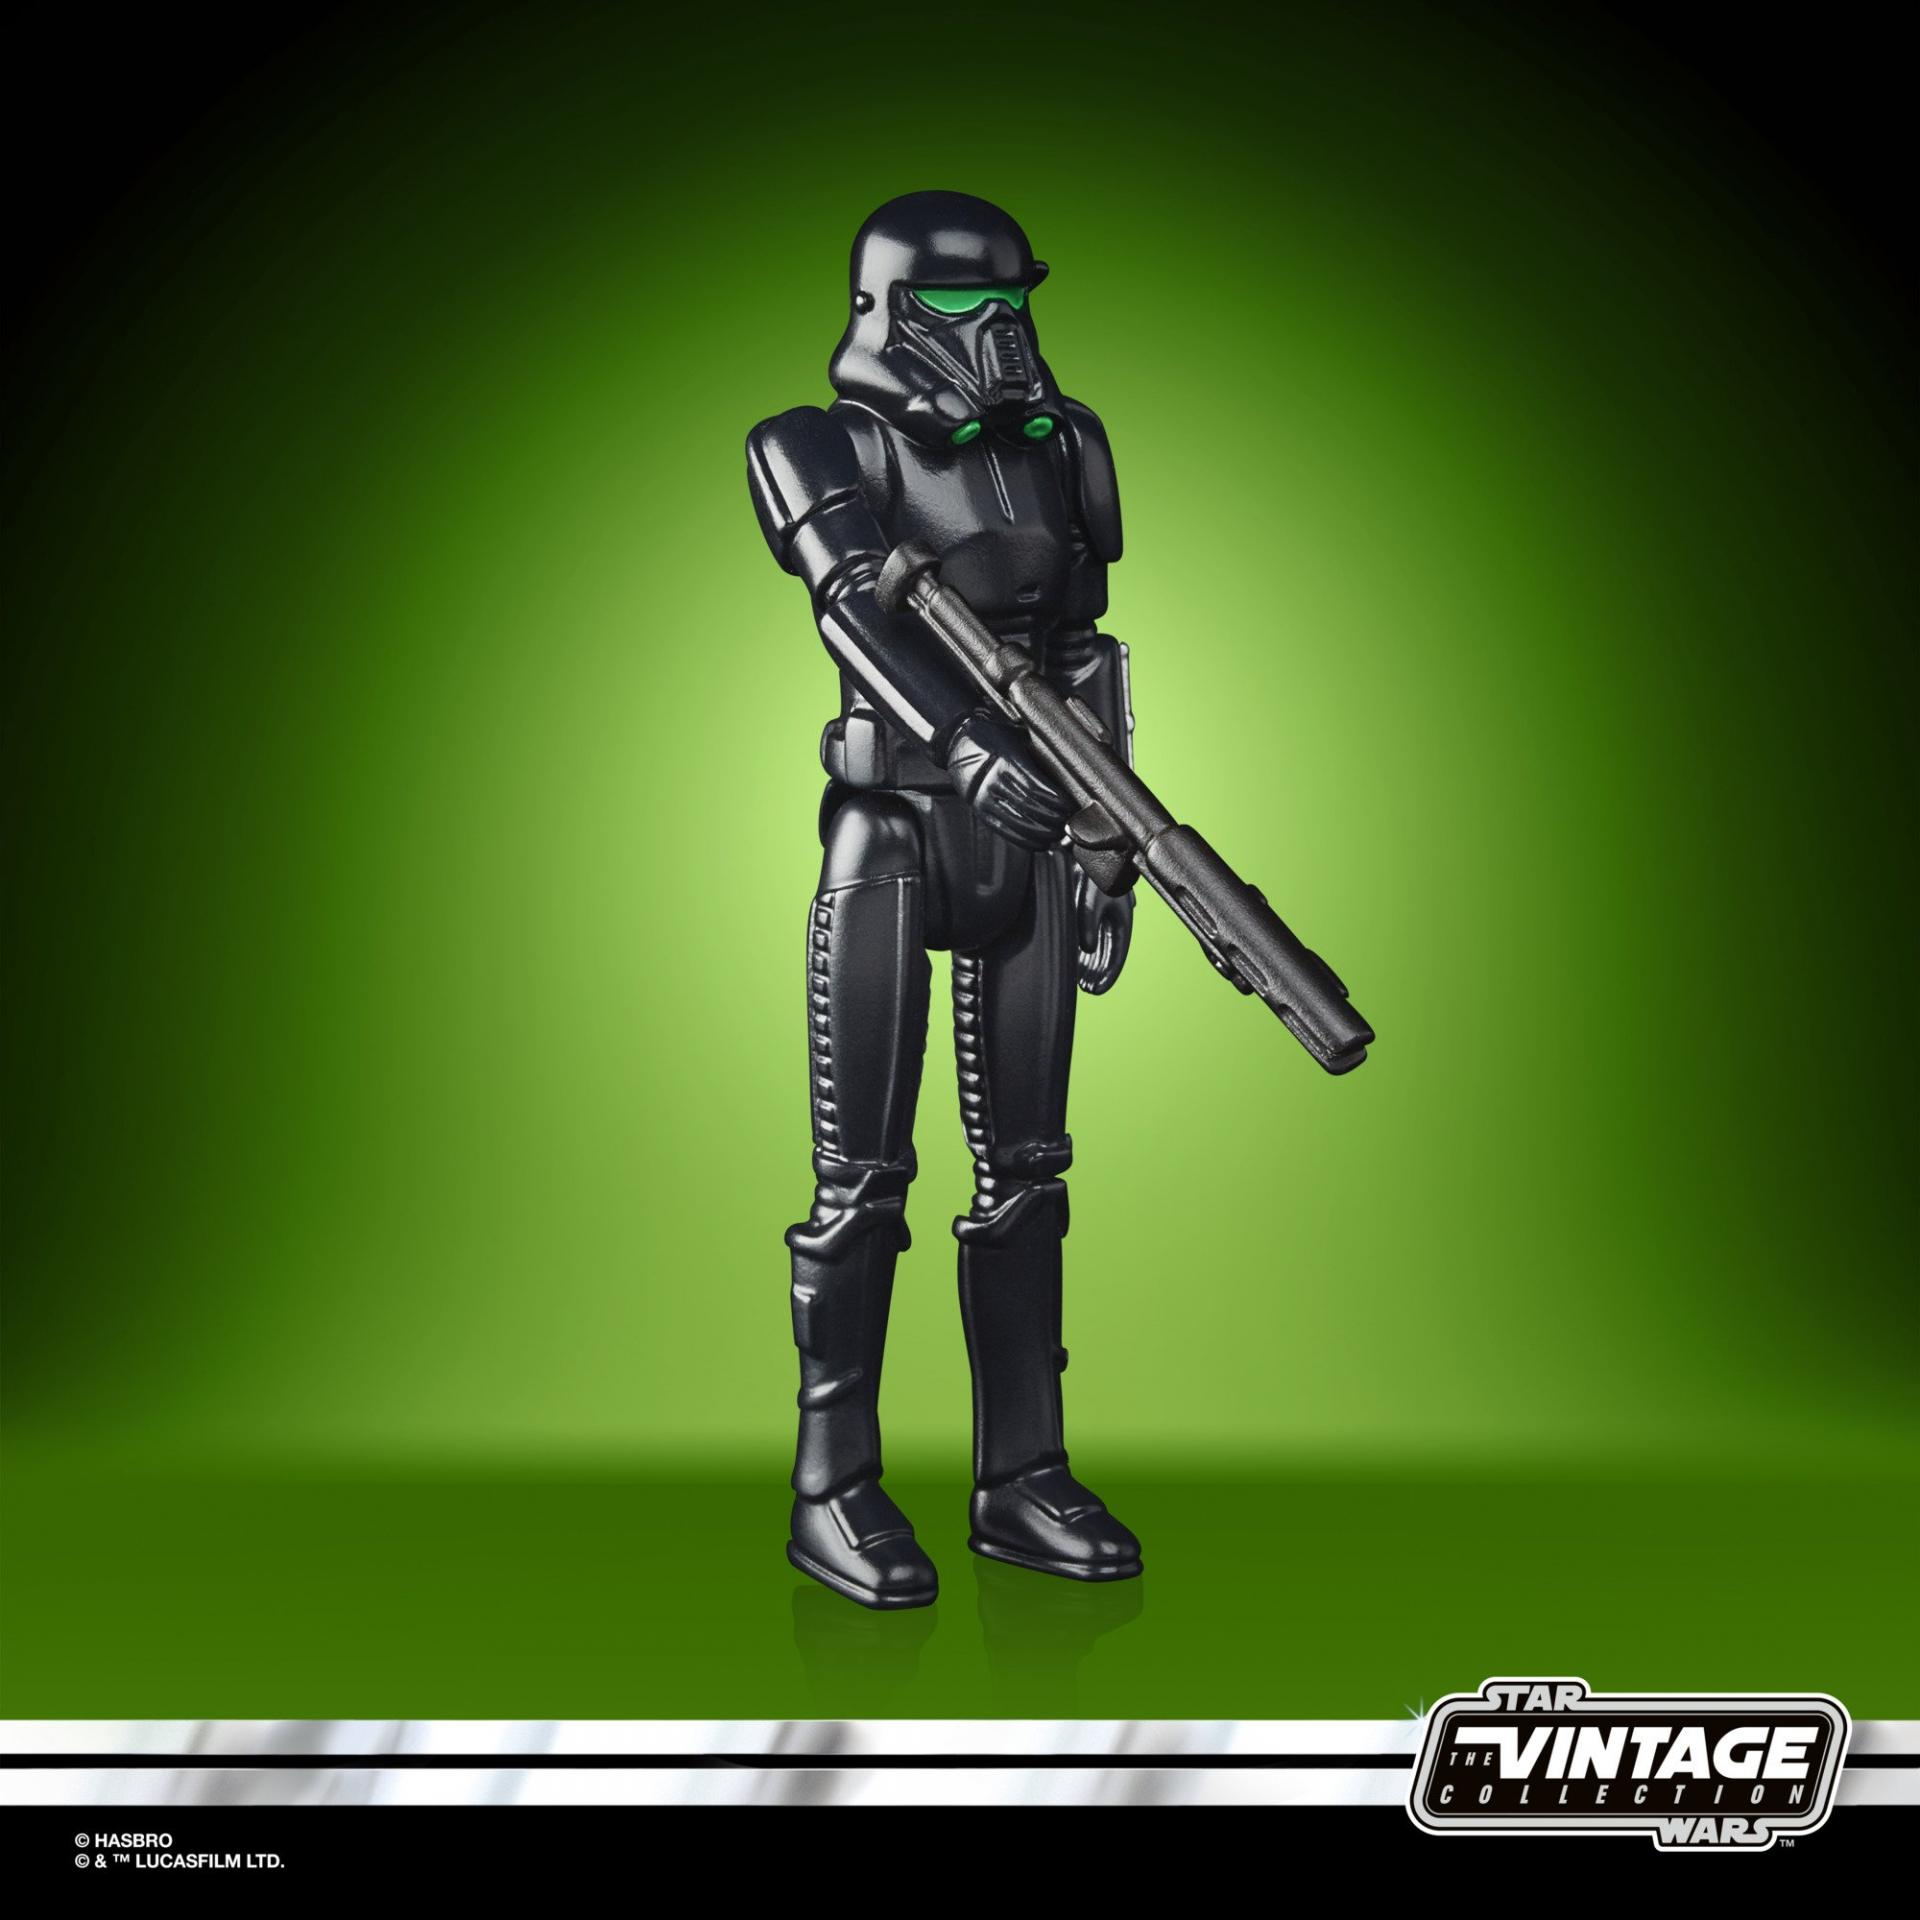 Tar wars the retro collection the mandalorian imperial death trooper3